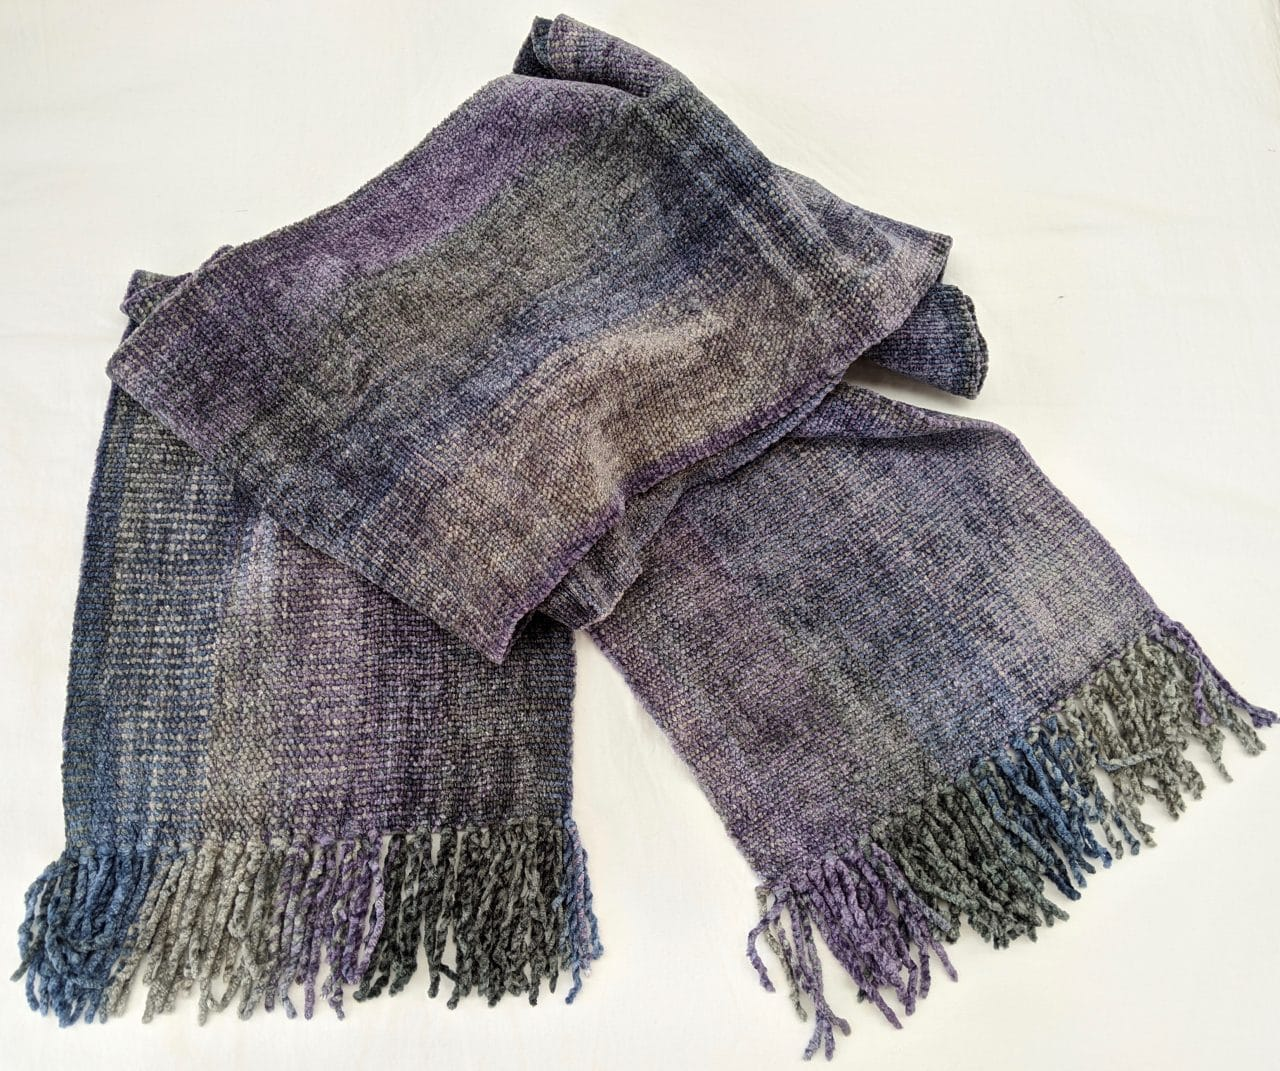 Lilac, Pale Blue, Gray - Bamboo Chenille Handwoven Scarf 8 x 68